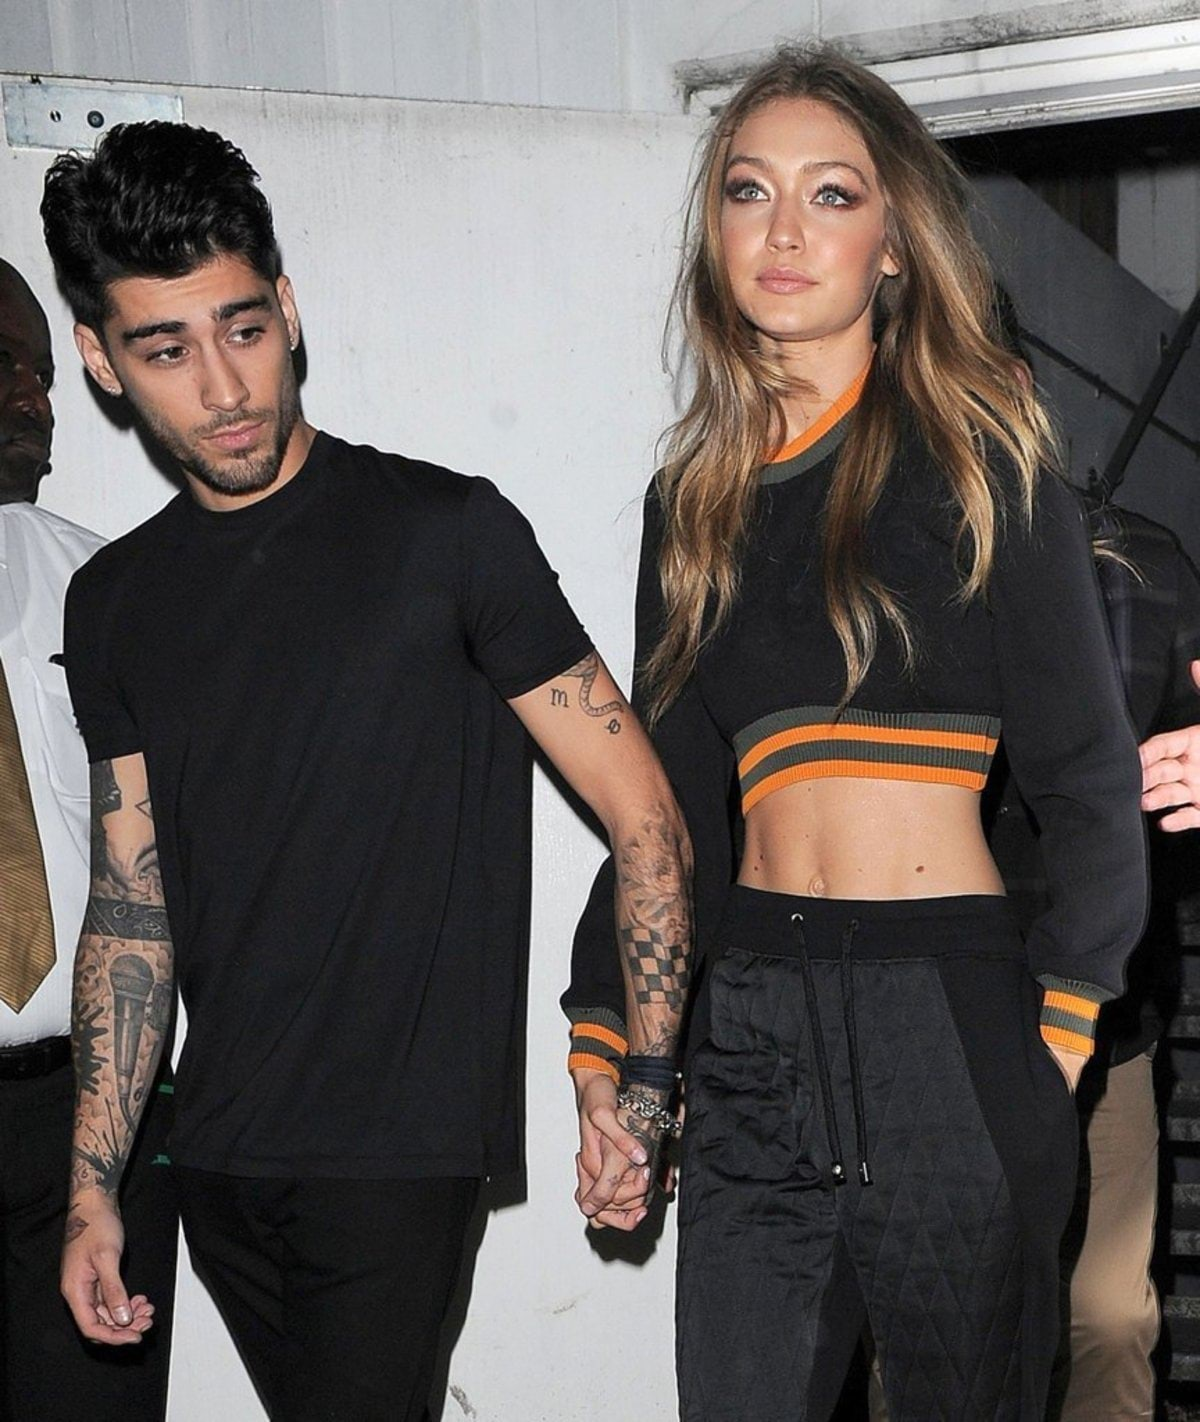 Gigi-Hadid-Zayn-Malik-Out-London-September-2016